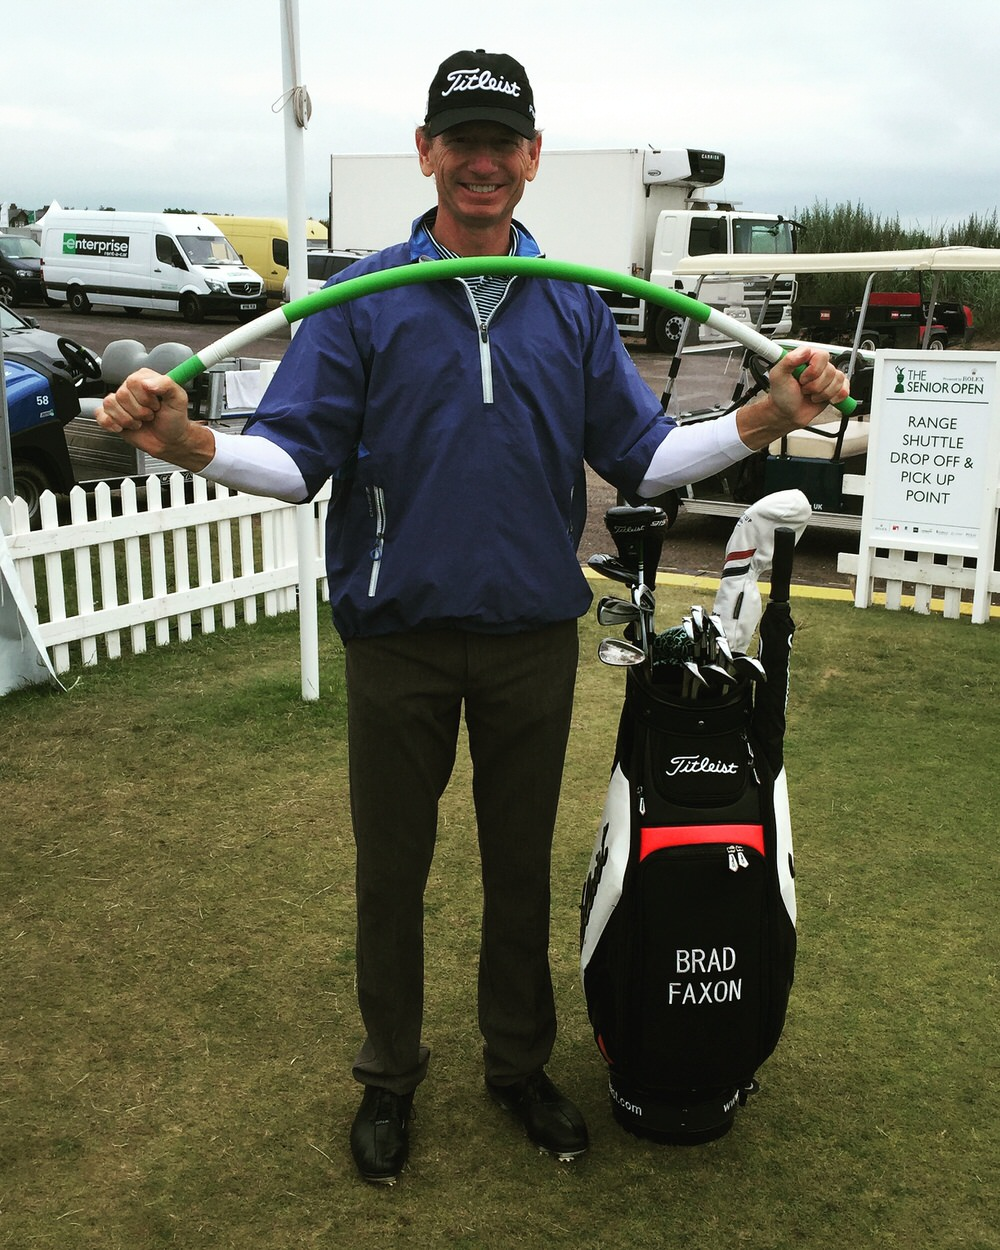 Brad Faxon with his ProFitStick